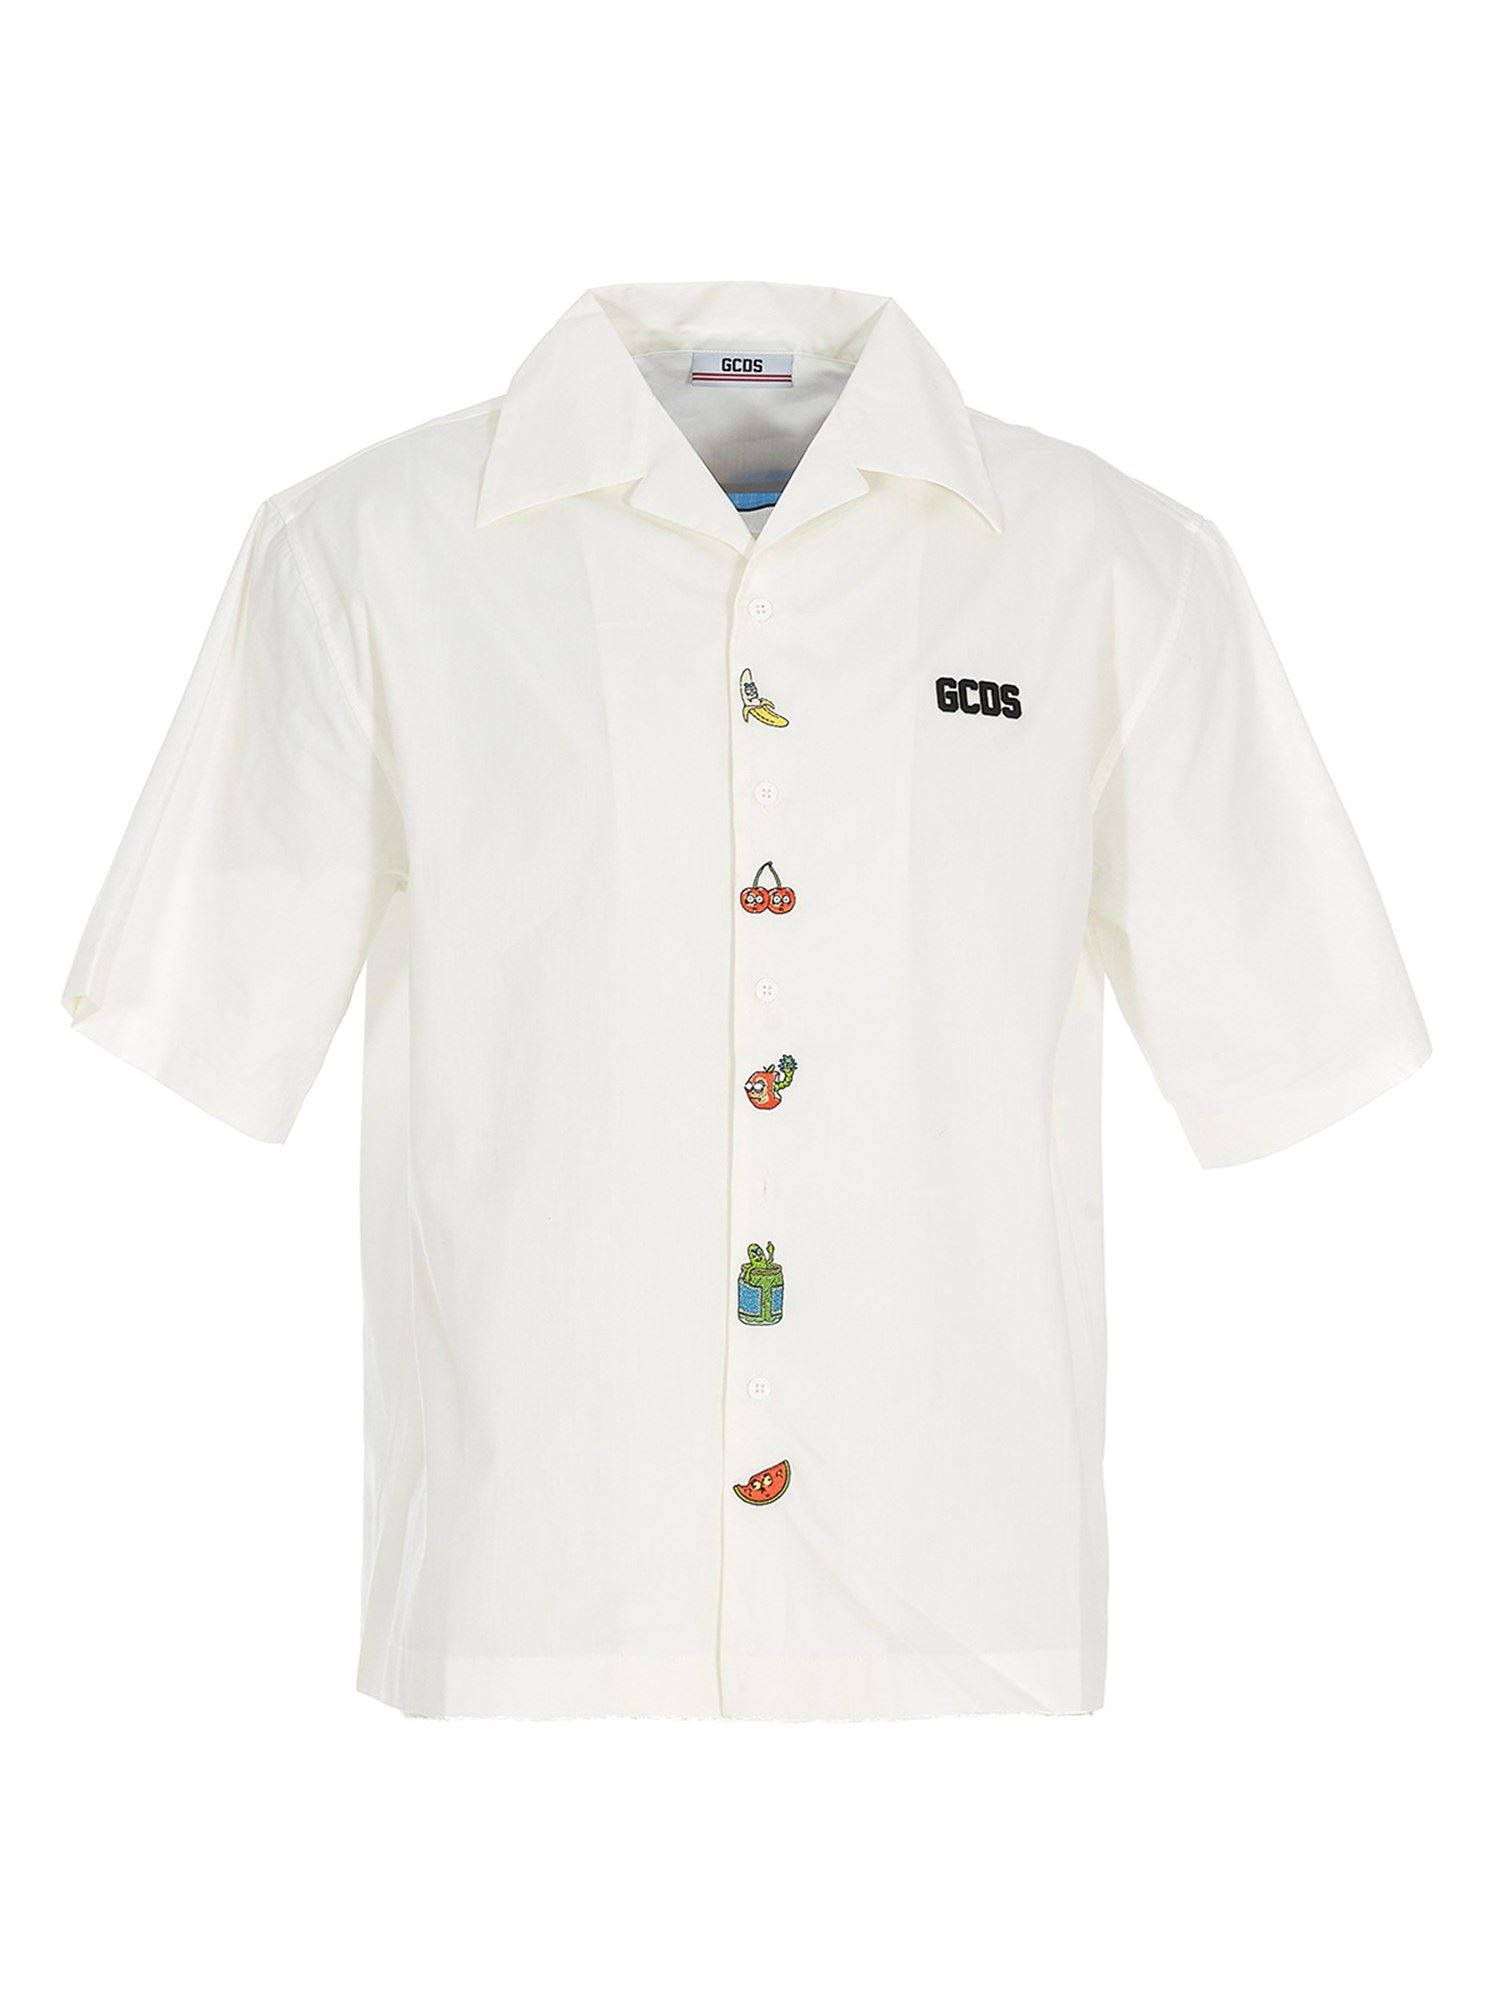 Gcds Cottons EMBROIDERED COTTON SHIRT IN WHITE